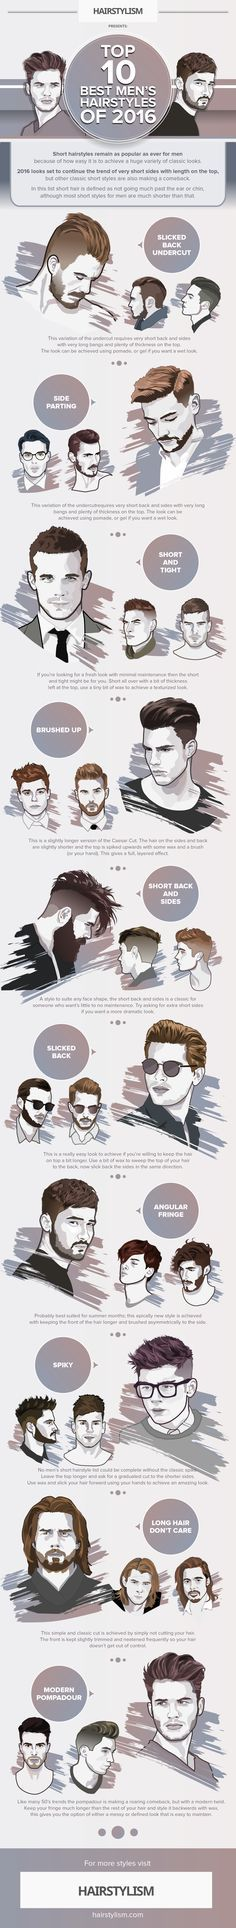 Hairstylism Infographic